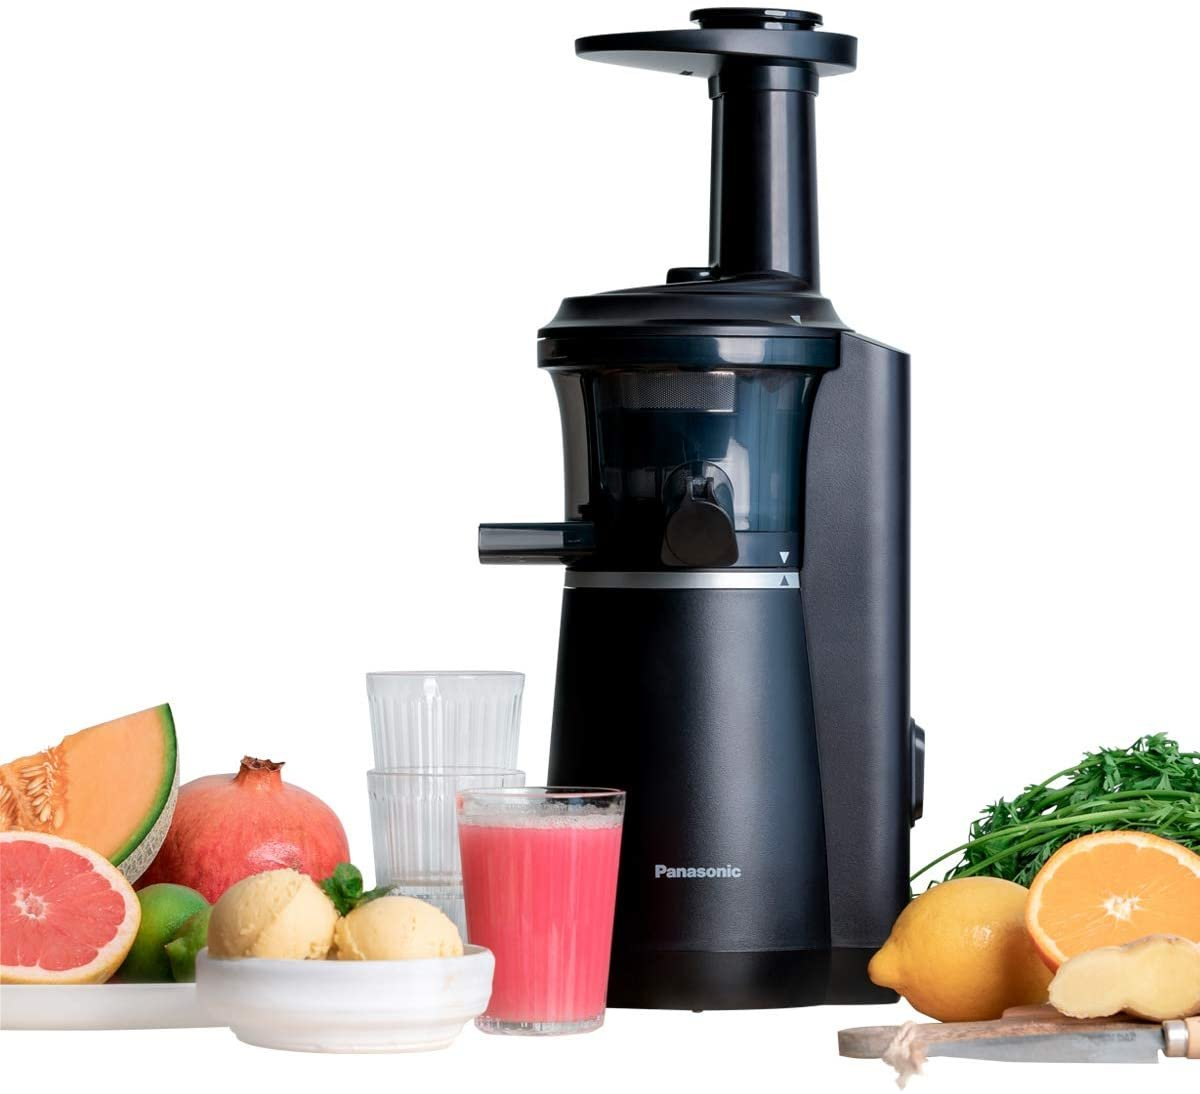 Slow Juicer Panasonic Amazon